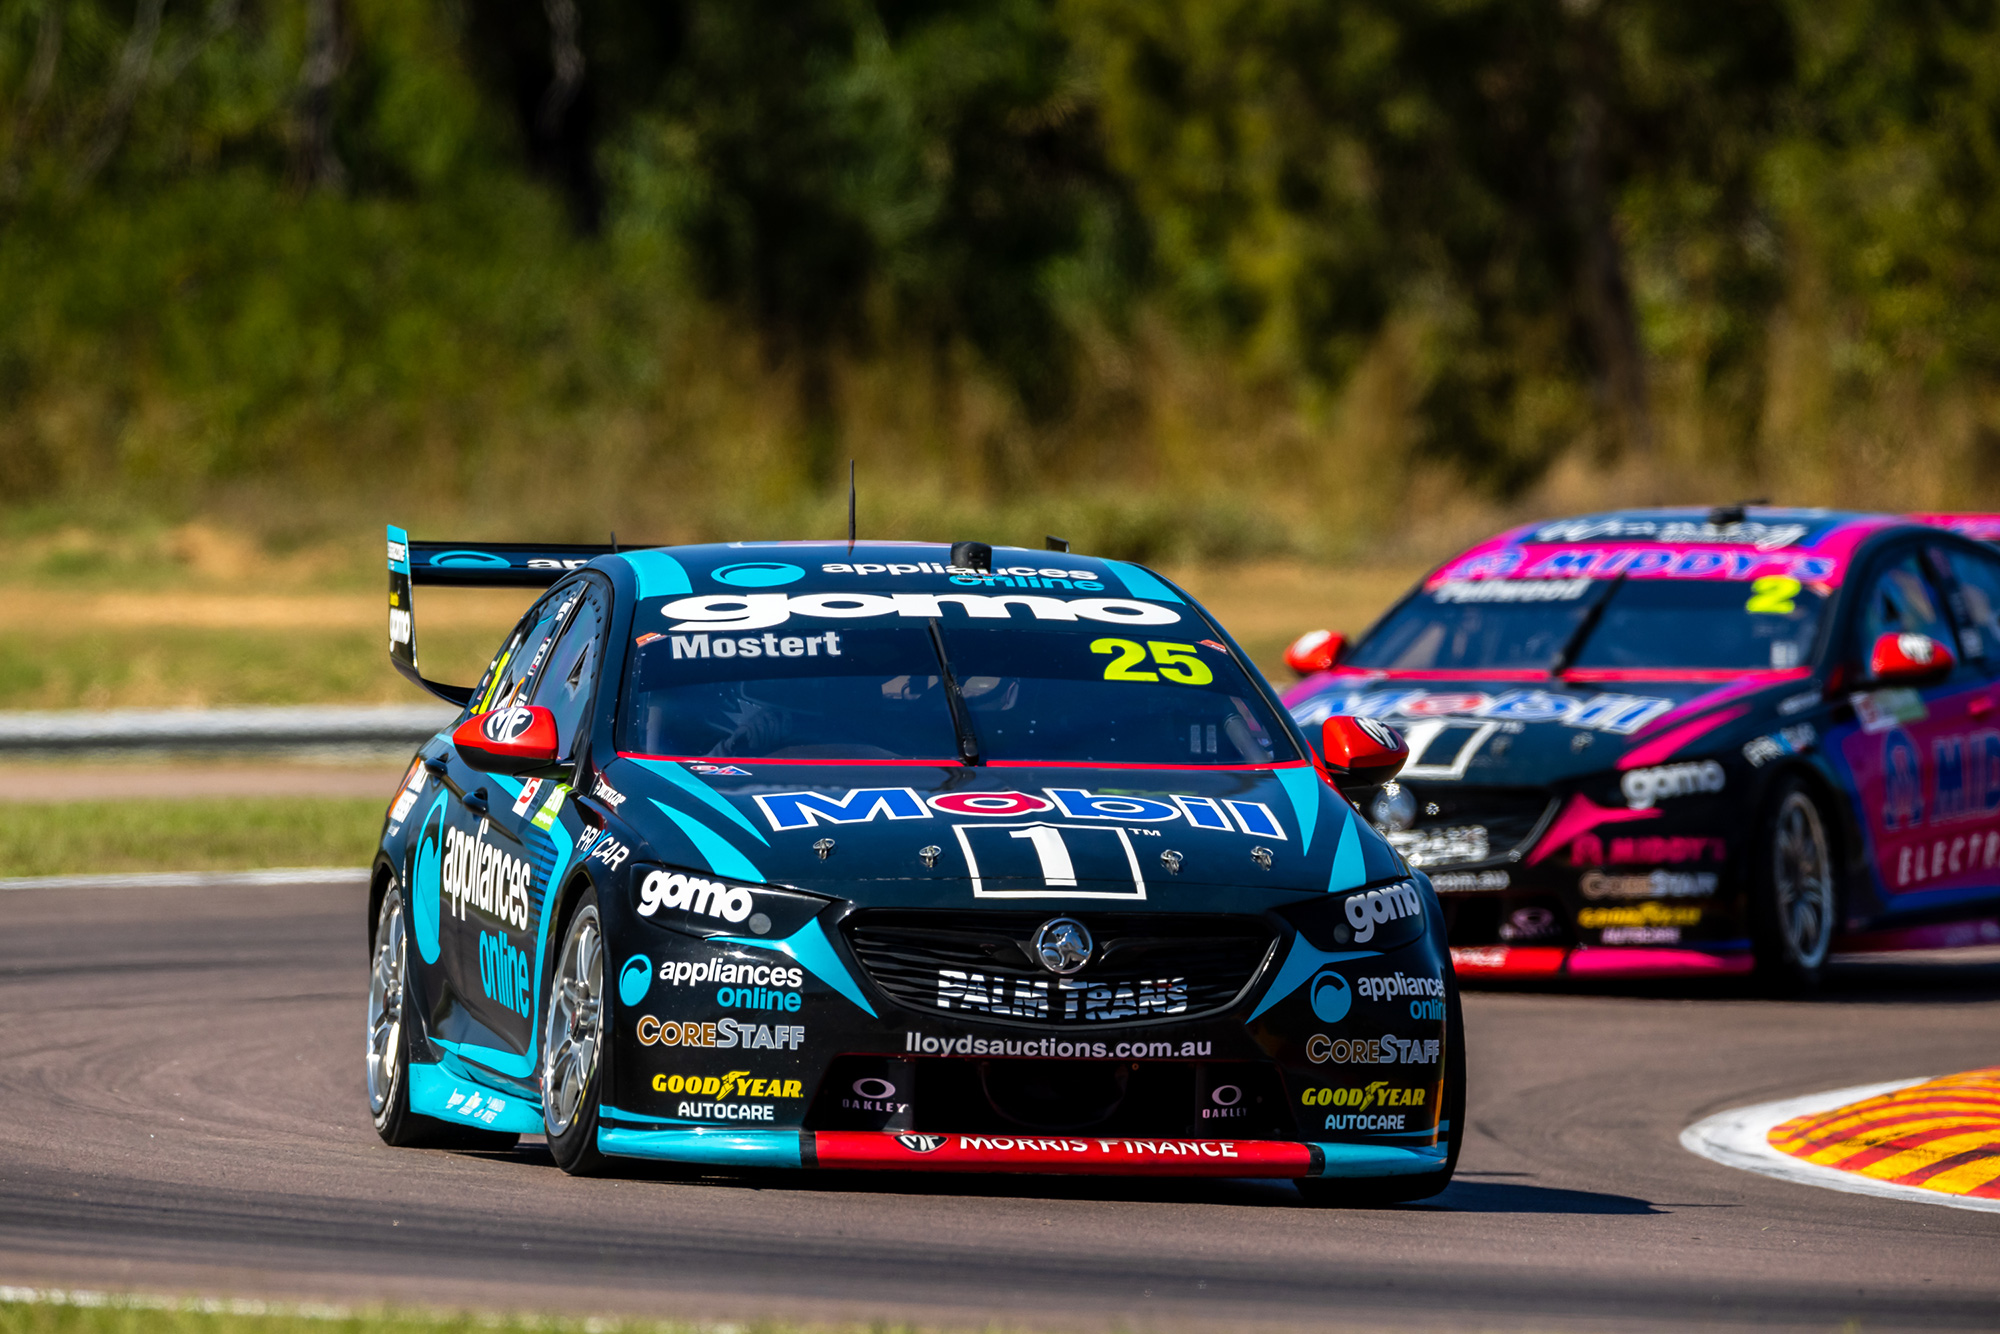 Chaz Mostert was the highest points getter for the round.